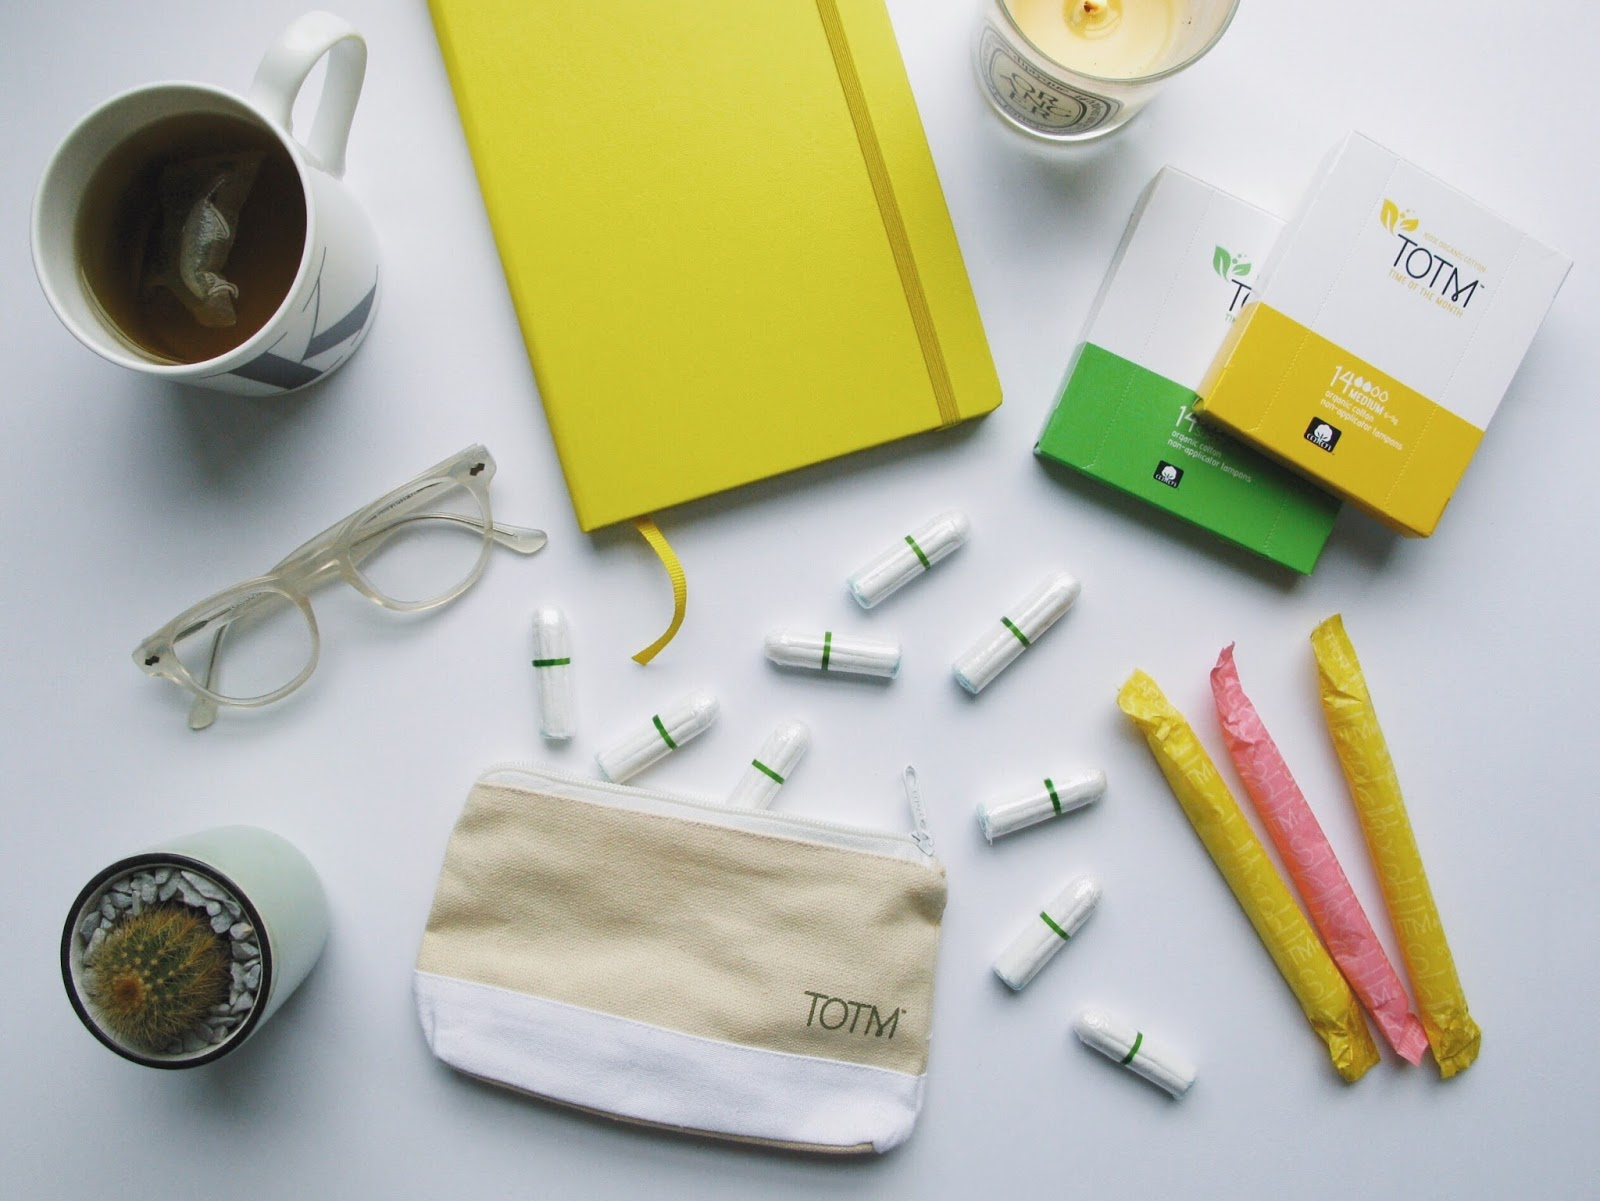 Are You Using Organic Cotton Tampon and Pads During Your Time Of The Month?